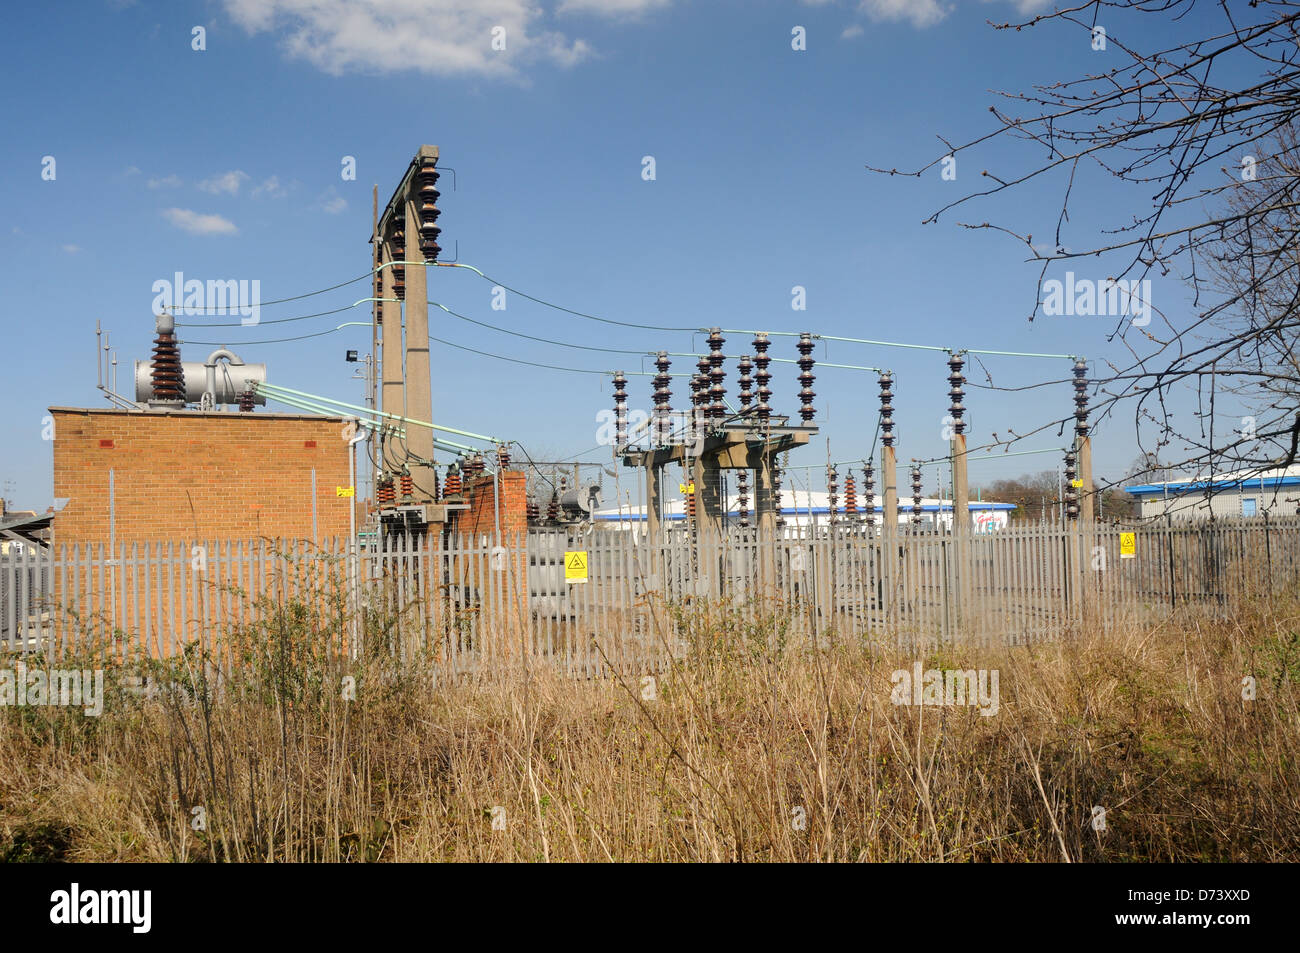 The 132Kv 'Leicester North' Electricity Sub-Station in Leicester, Leicestershire, England - Stock Image